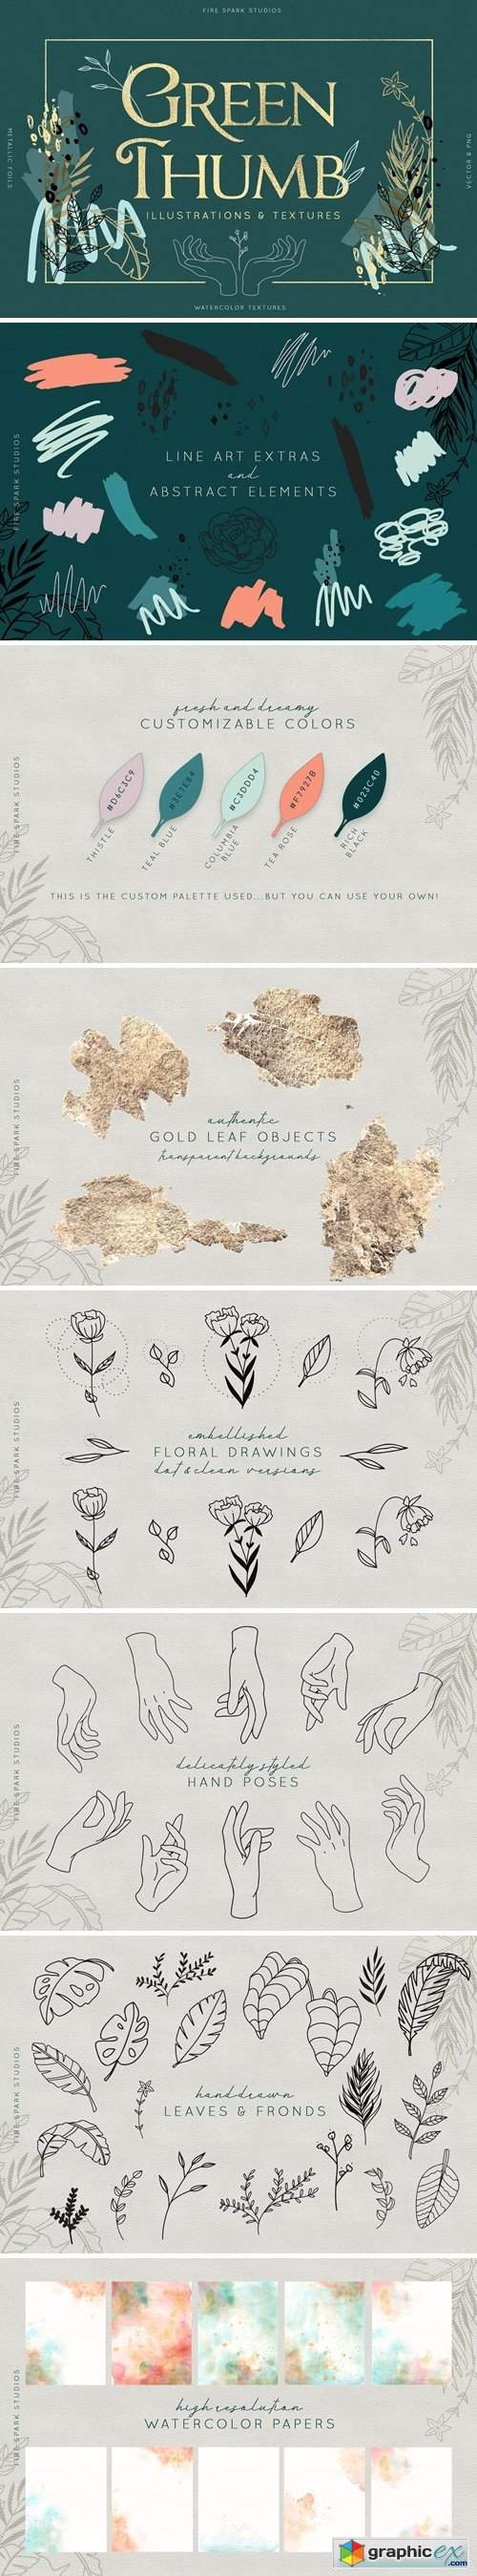 Green Thumb Illustrations & Textures